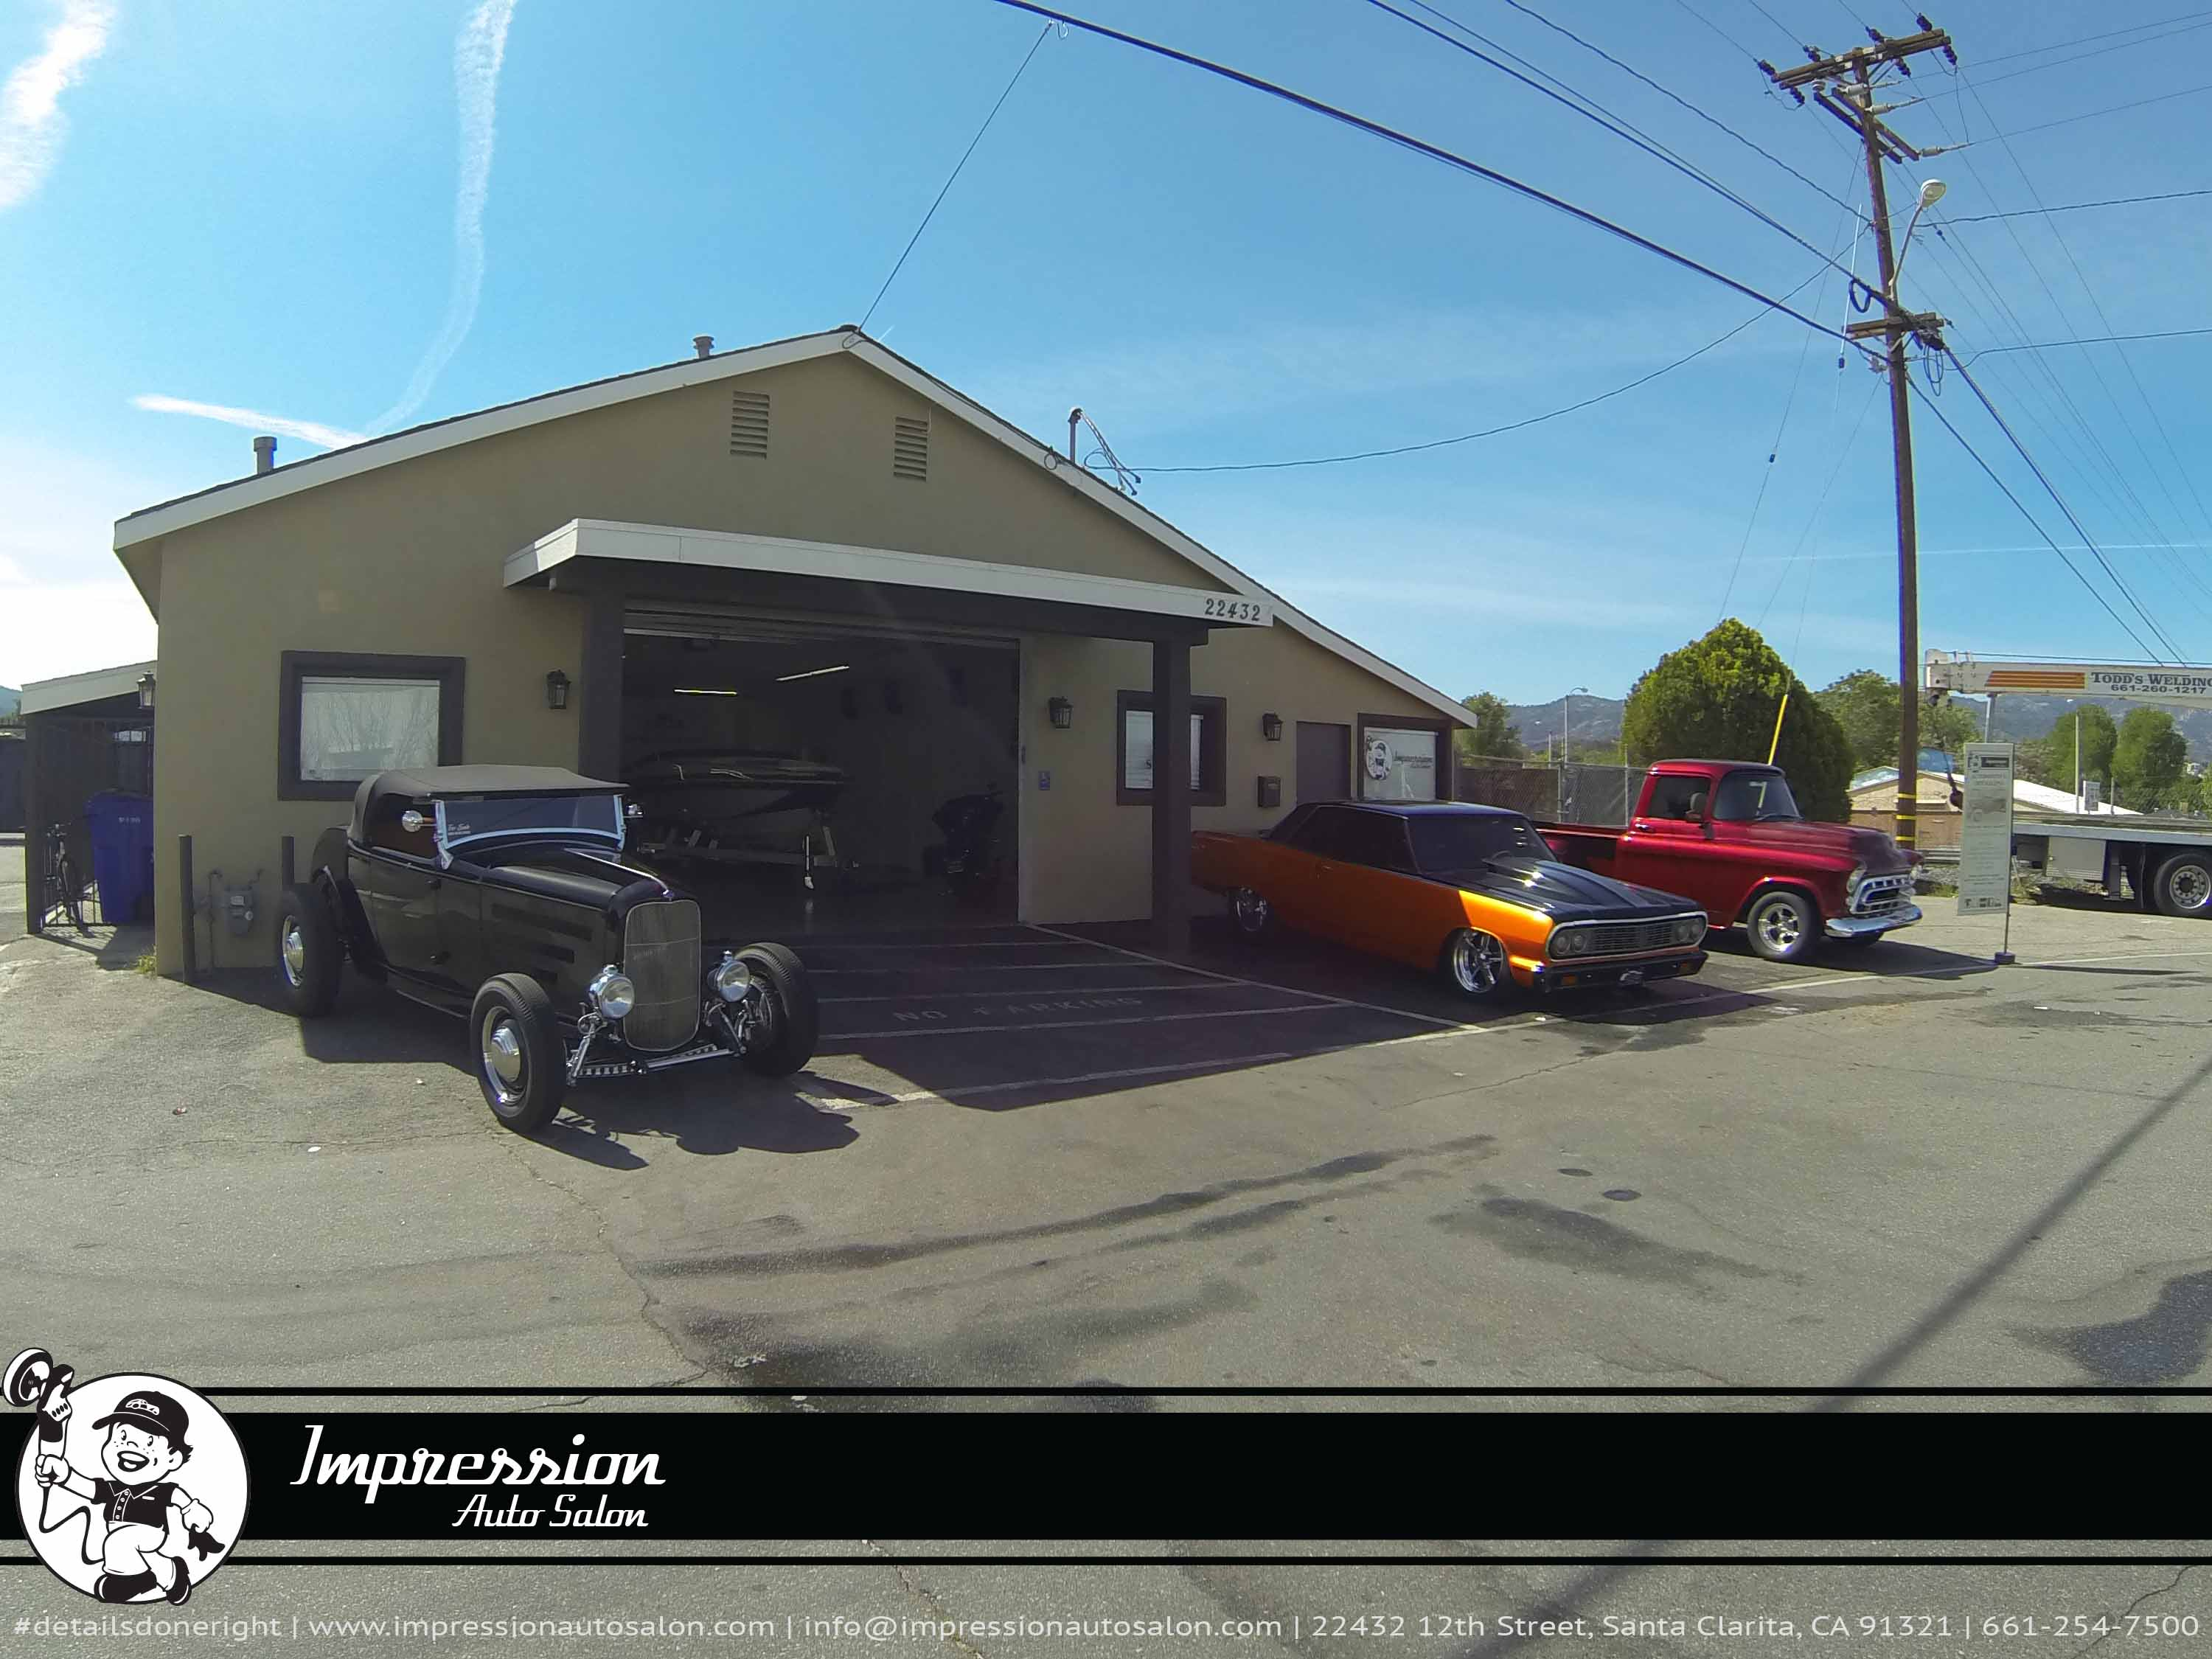 Front of Impression Auto Salon Detail Shop.jpg